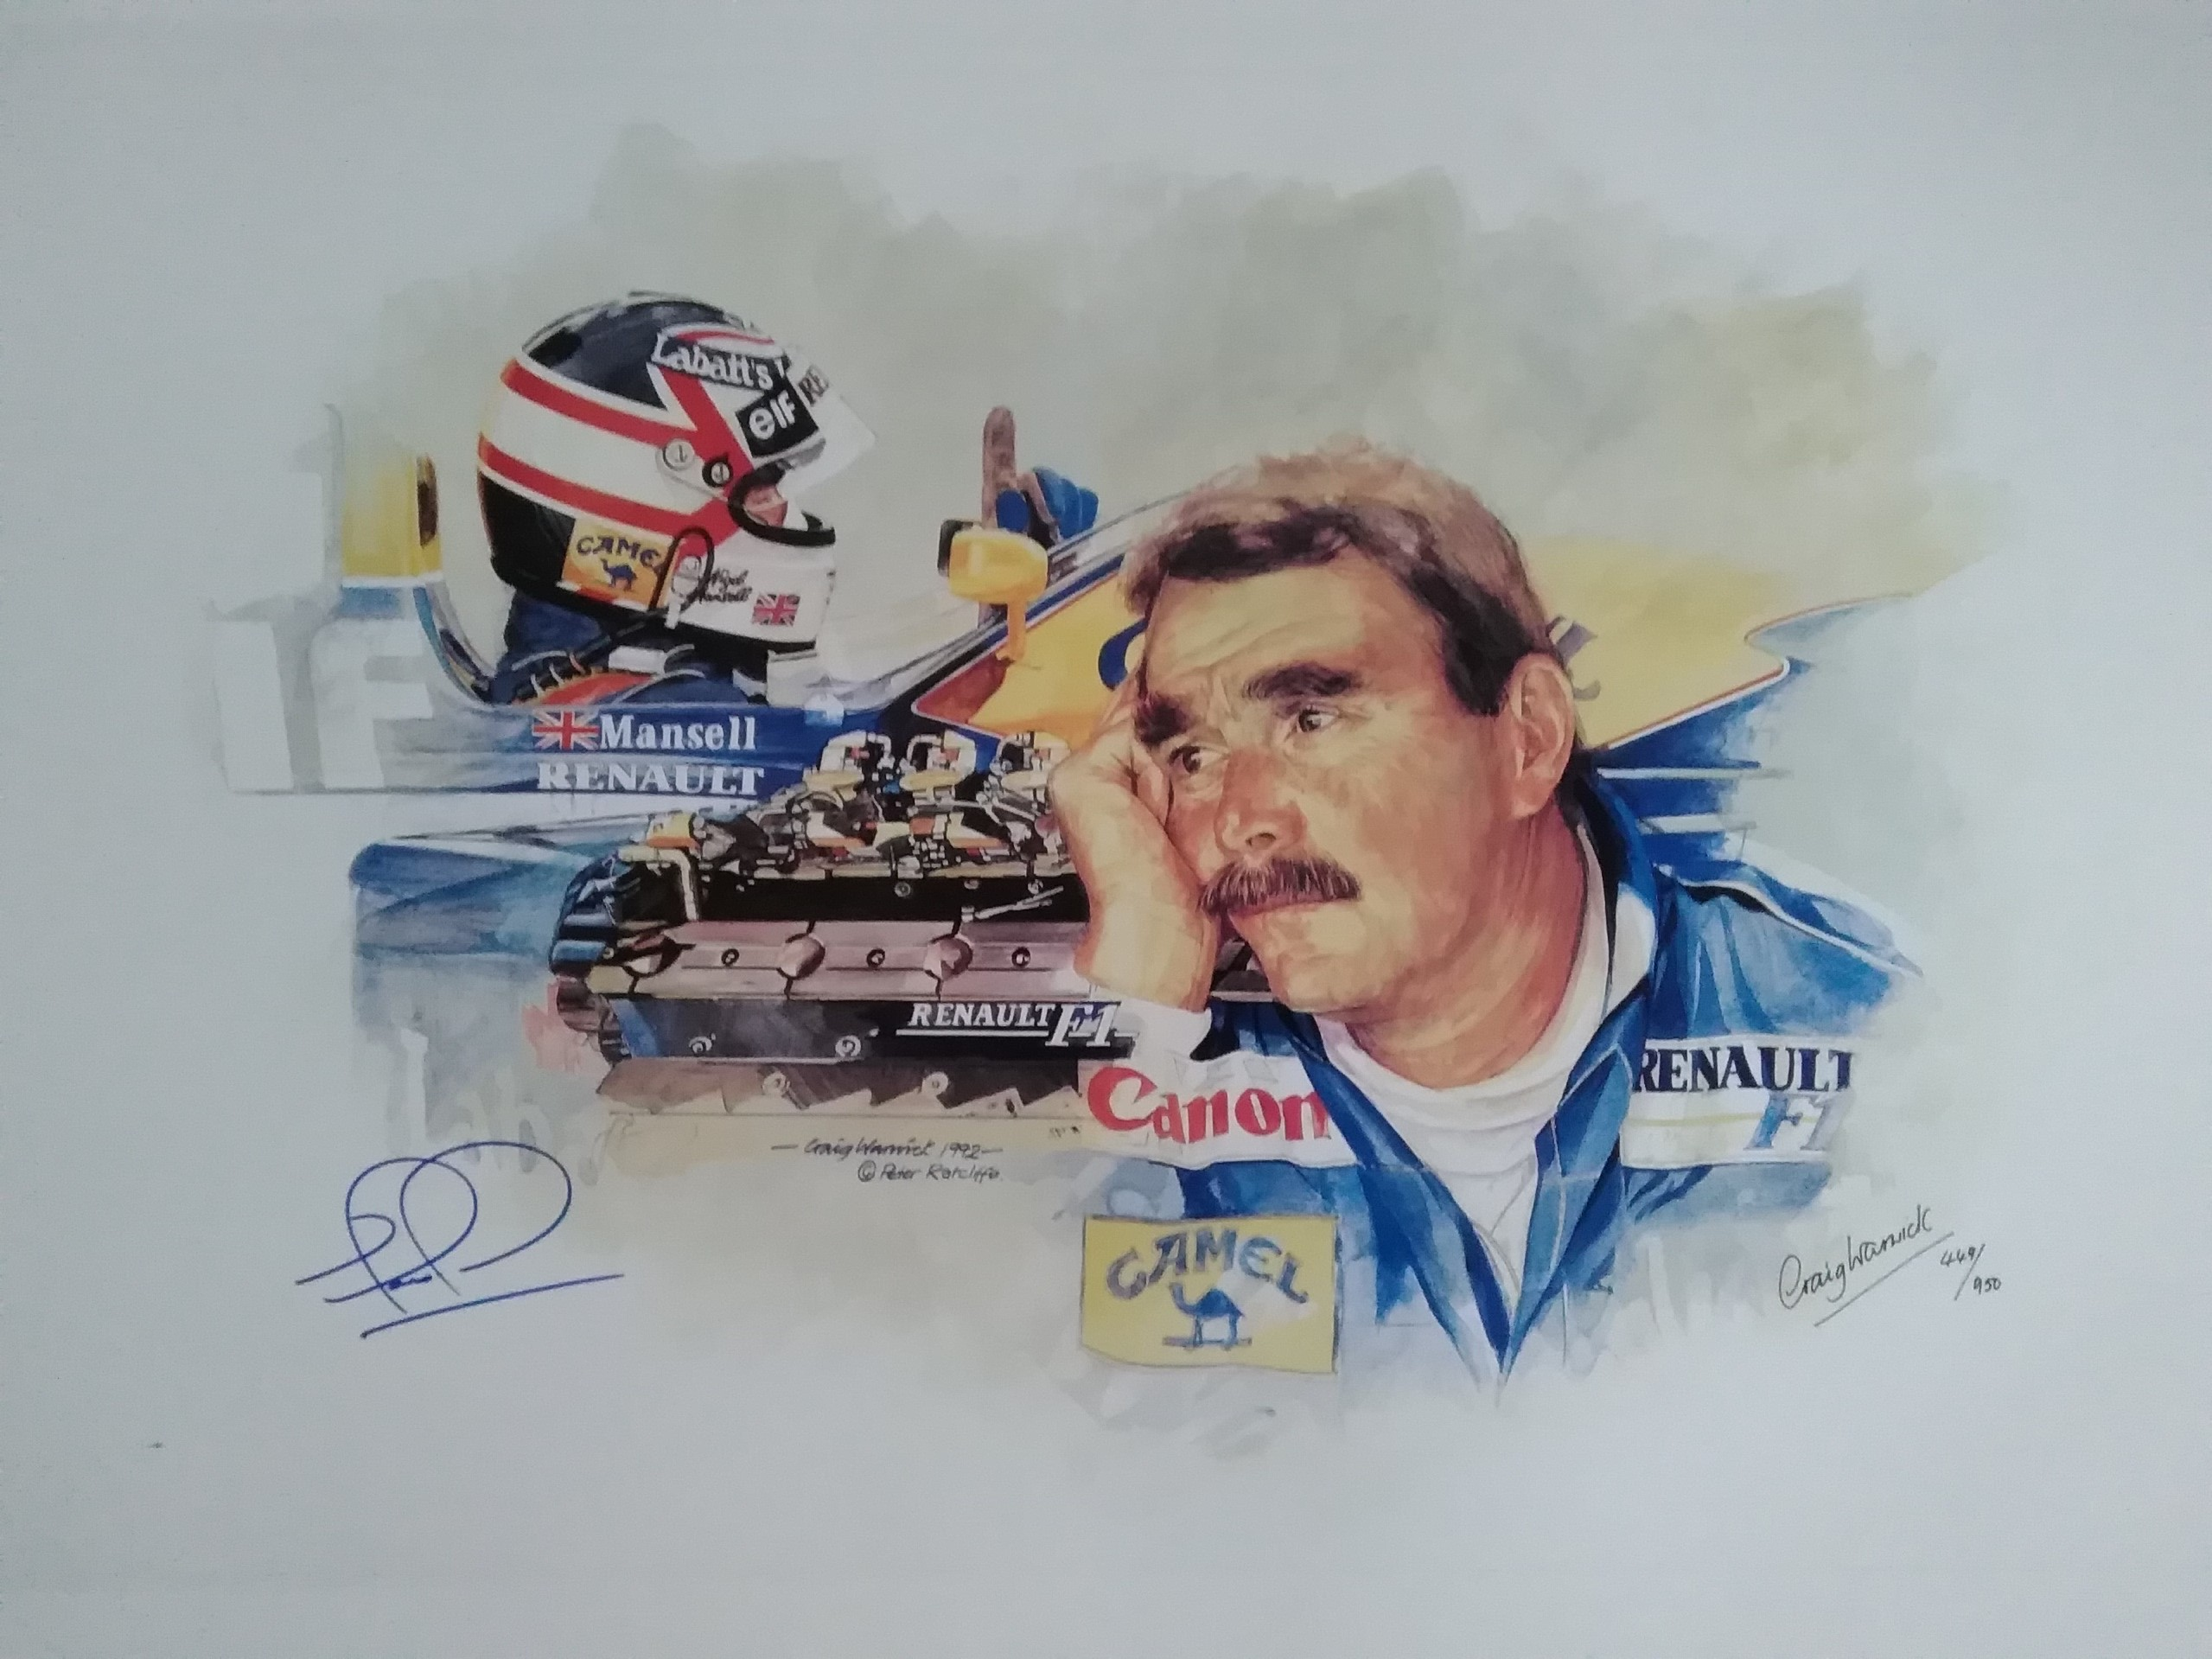 Nigel Mansell 'Man and Machine' by Craig Warwick